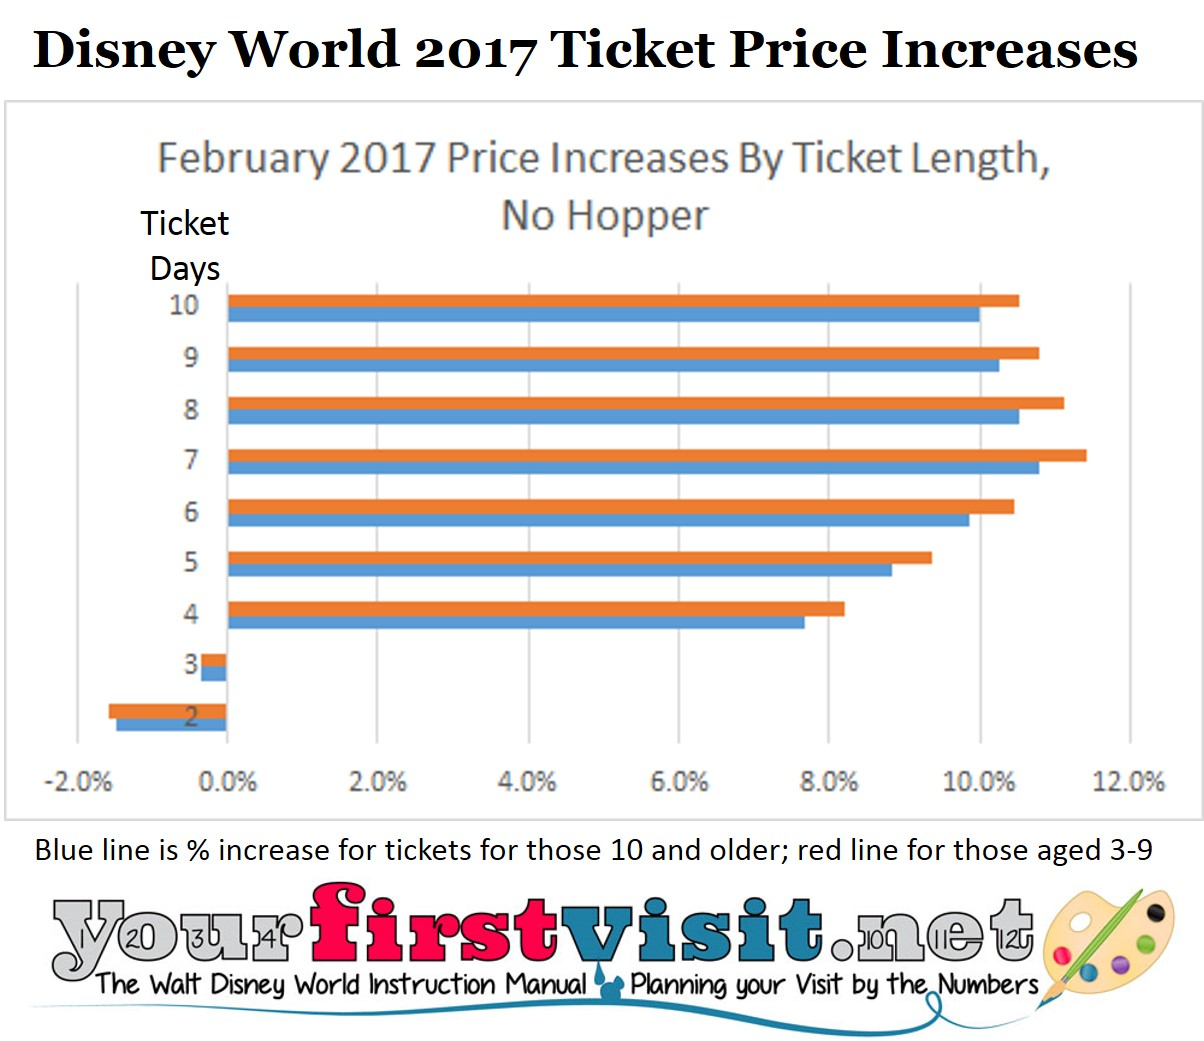 increasing movie ticket prices essay The cost of tickets for 2-d movies is expected to go up marginally - less than 5 percent - but the price of a 3-d imax ticket could go up almost 26 percent to nearly $20.